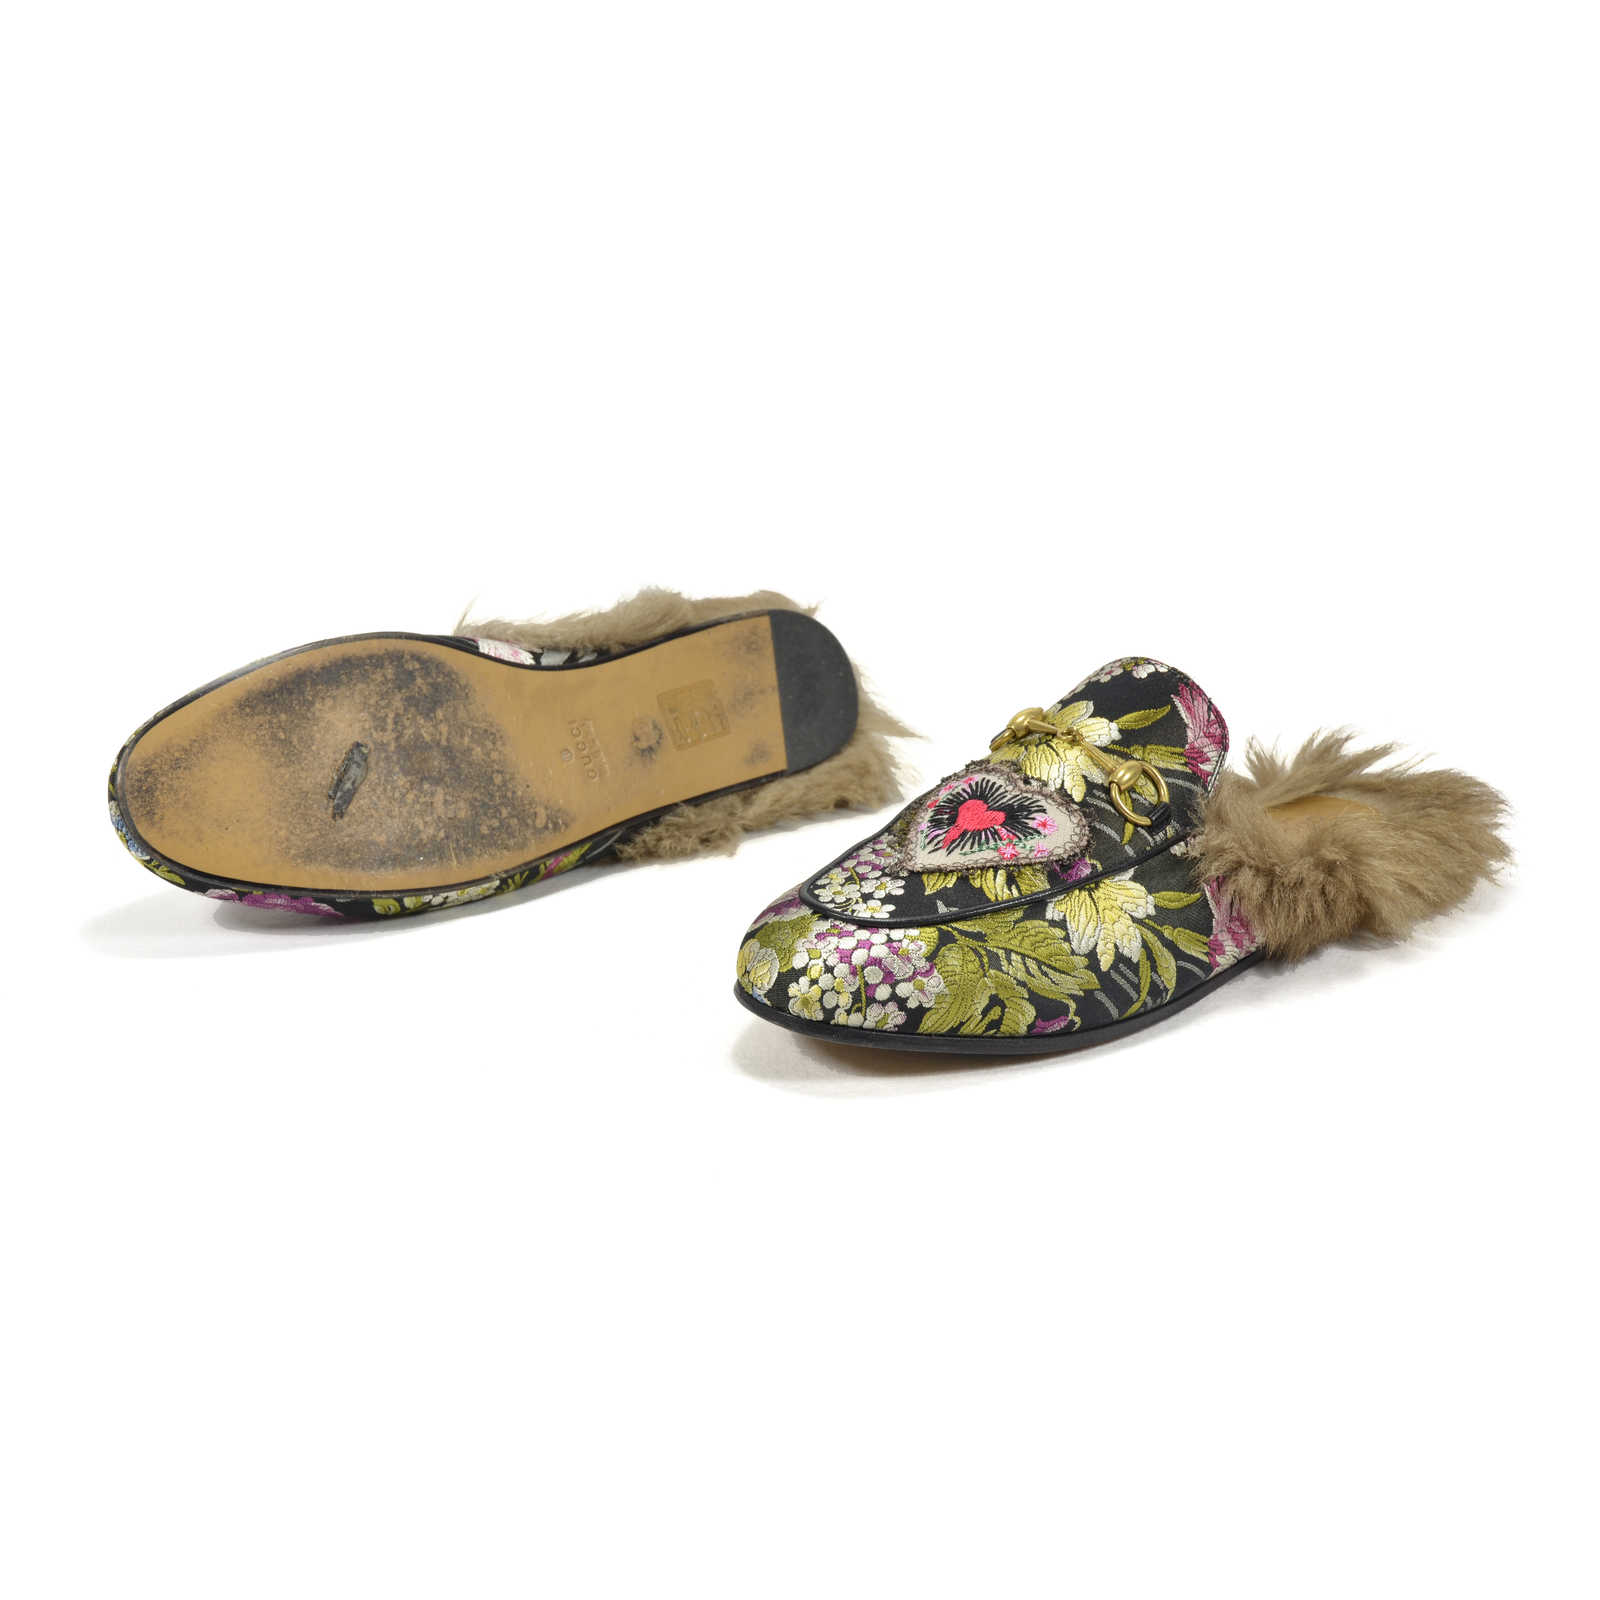 6ff59bd62ea ... Authentic Second Hand Gucci Princetown Floral Brocade Slipper  (PSS-051-00160) ...